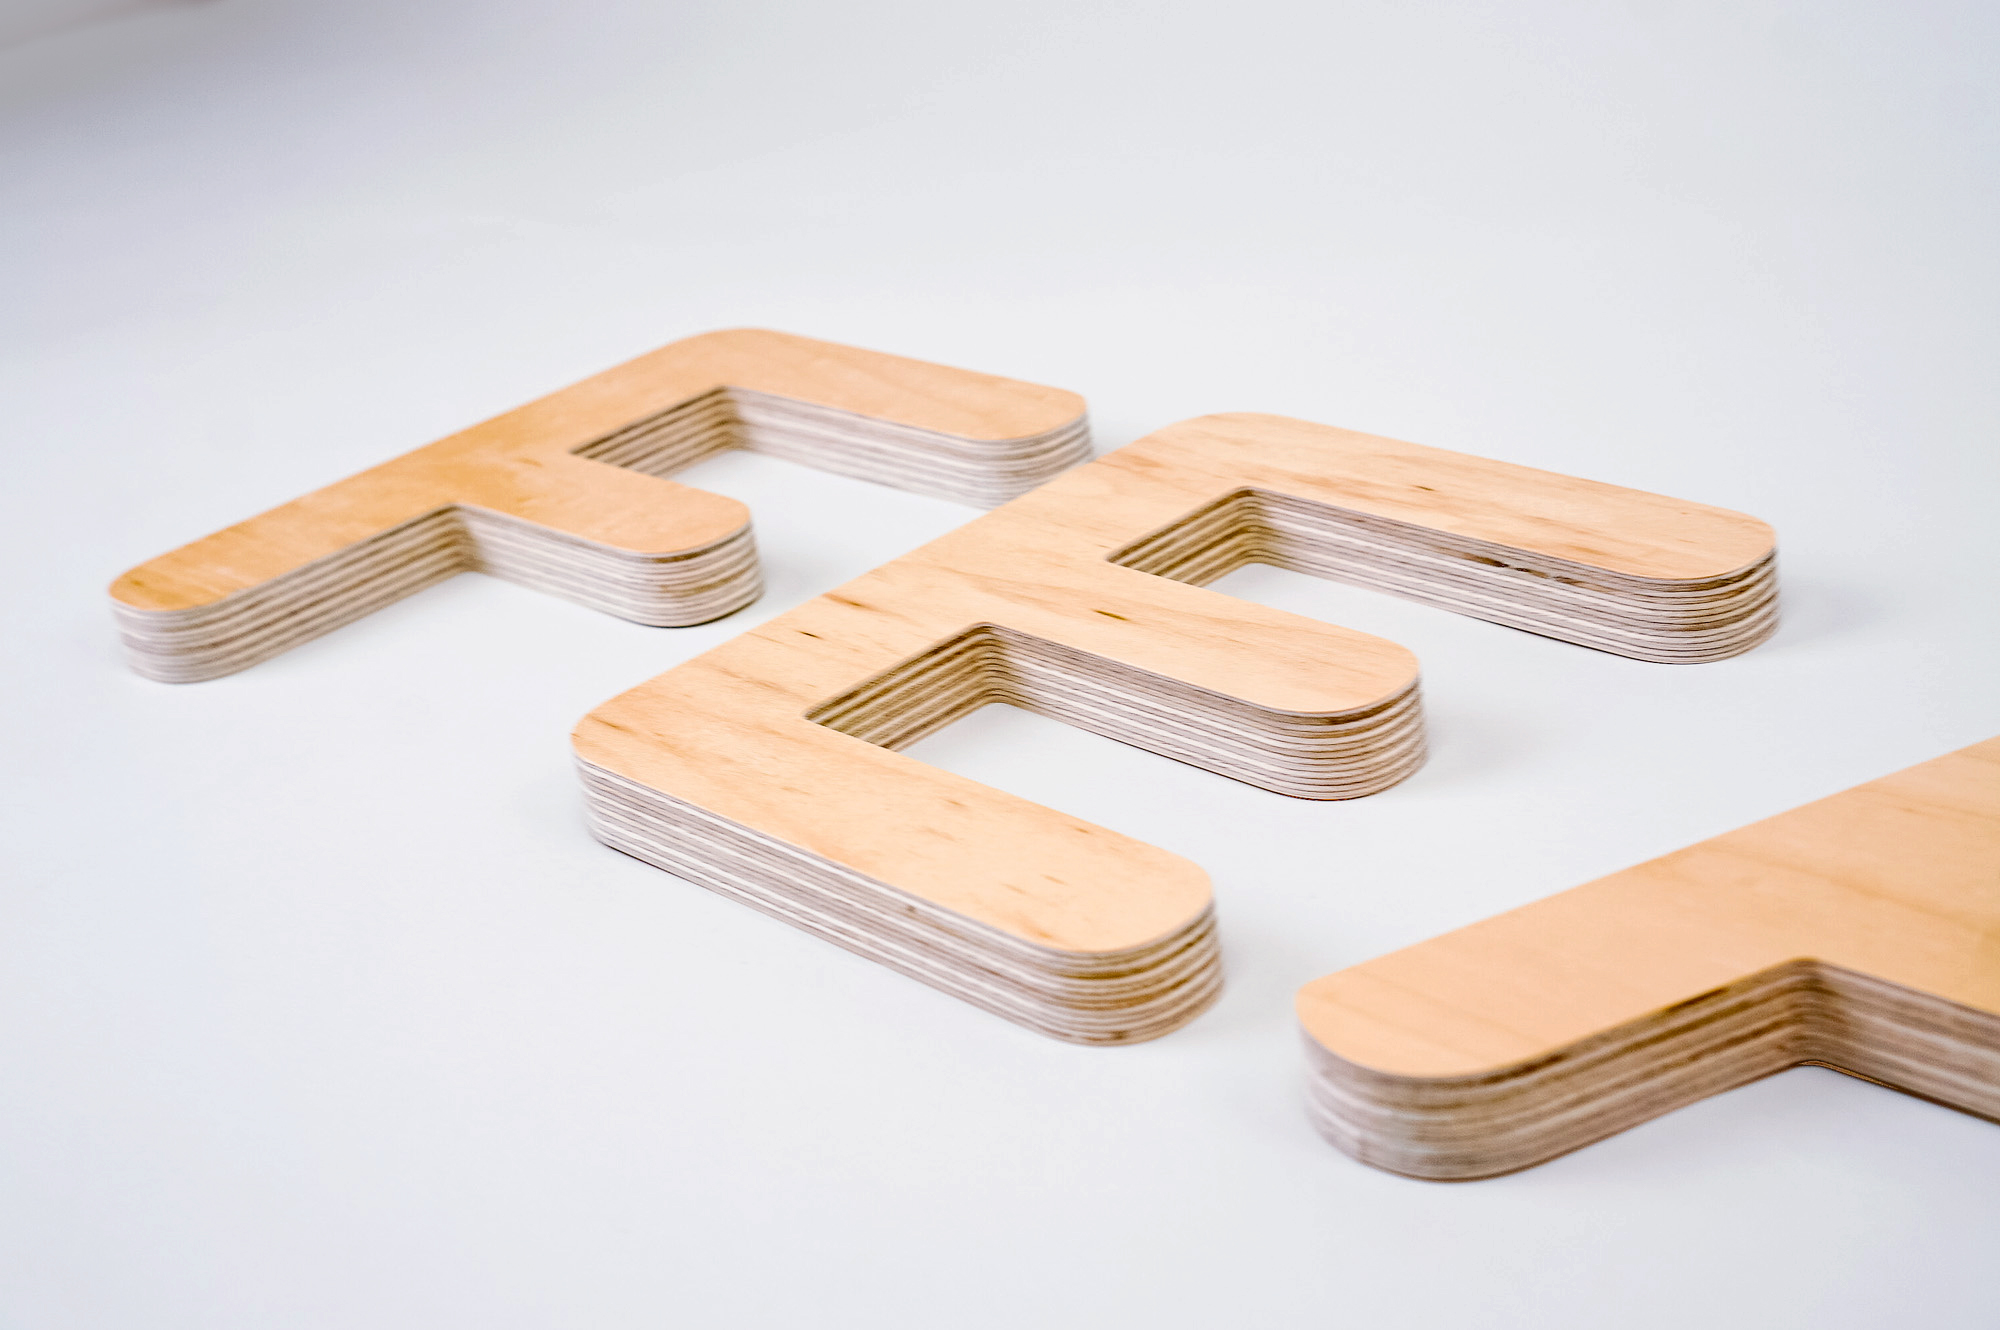 CNC routed plywood letters for Feather, furniture renting service.